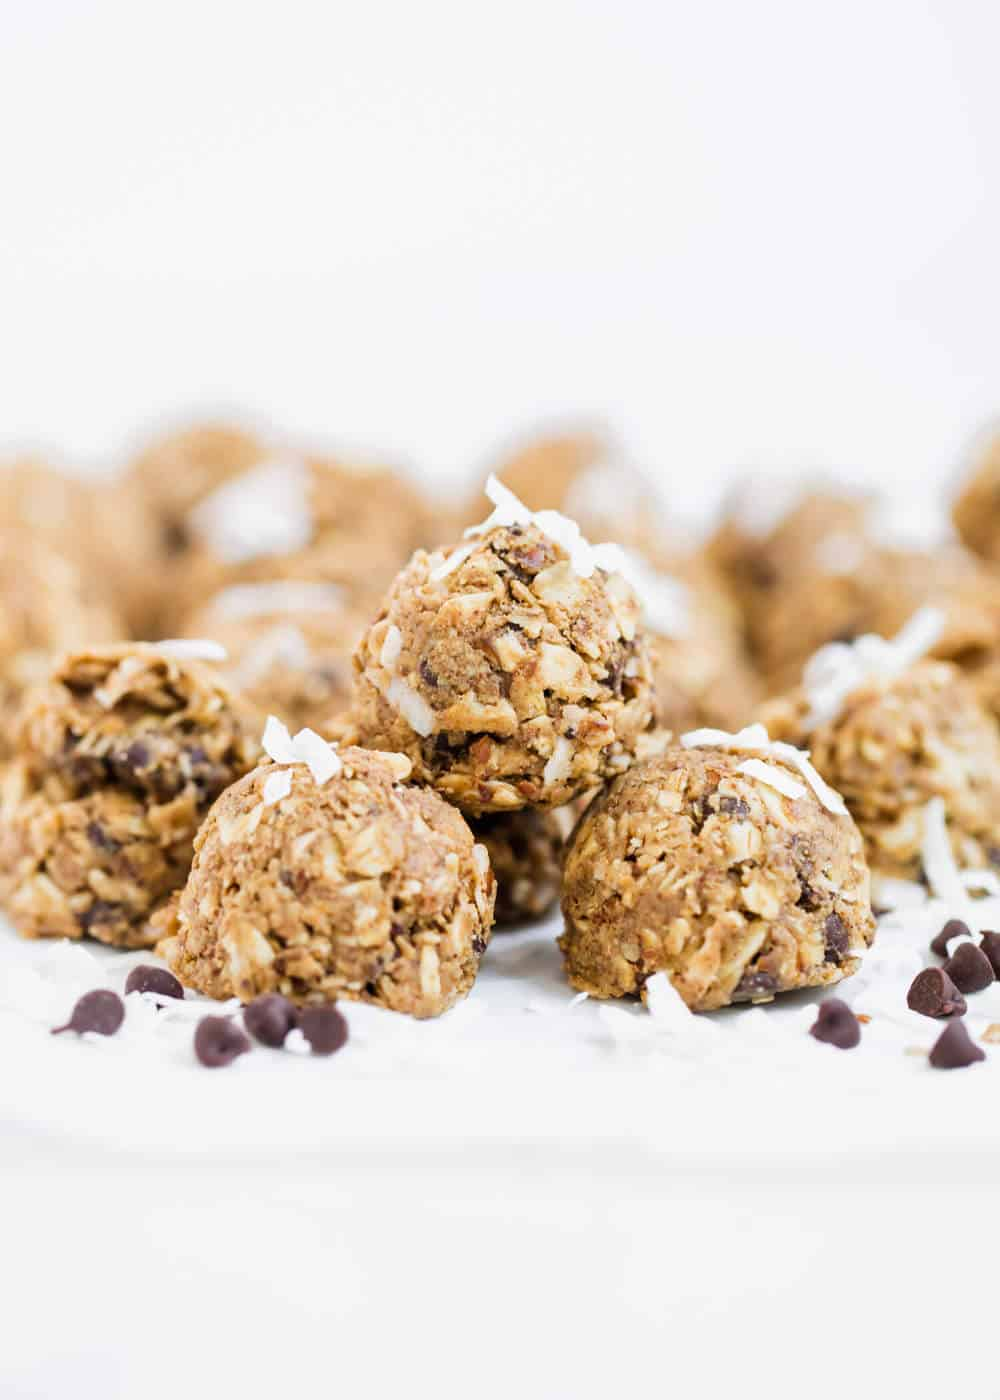 almond joy energy bites topped with shredded coconut and chocolate chips